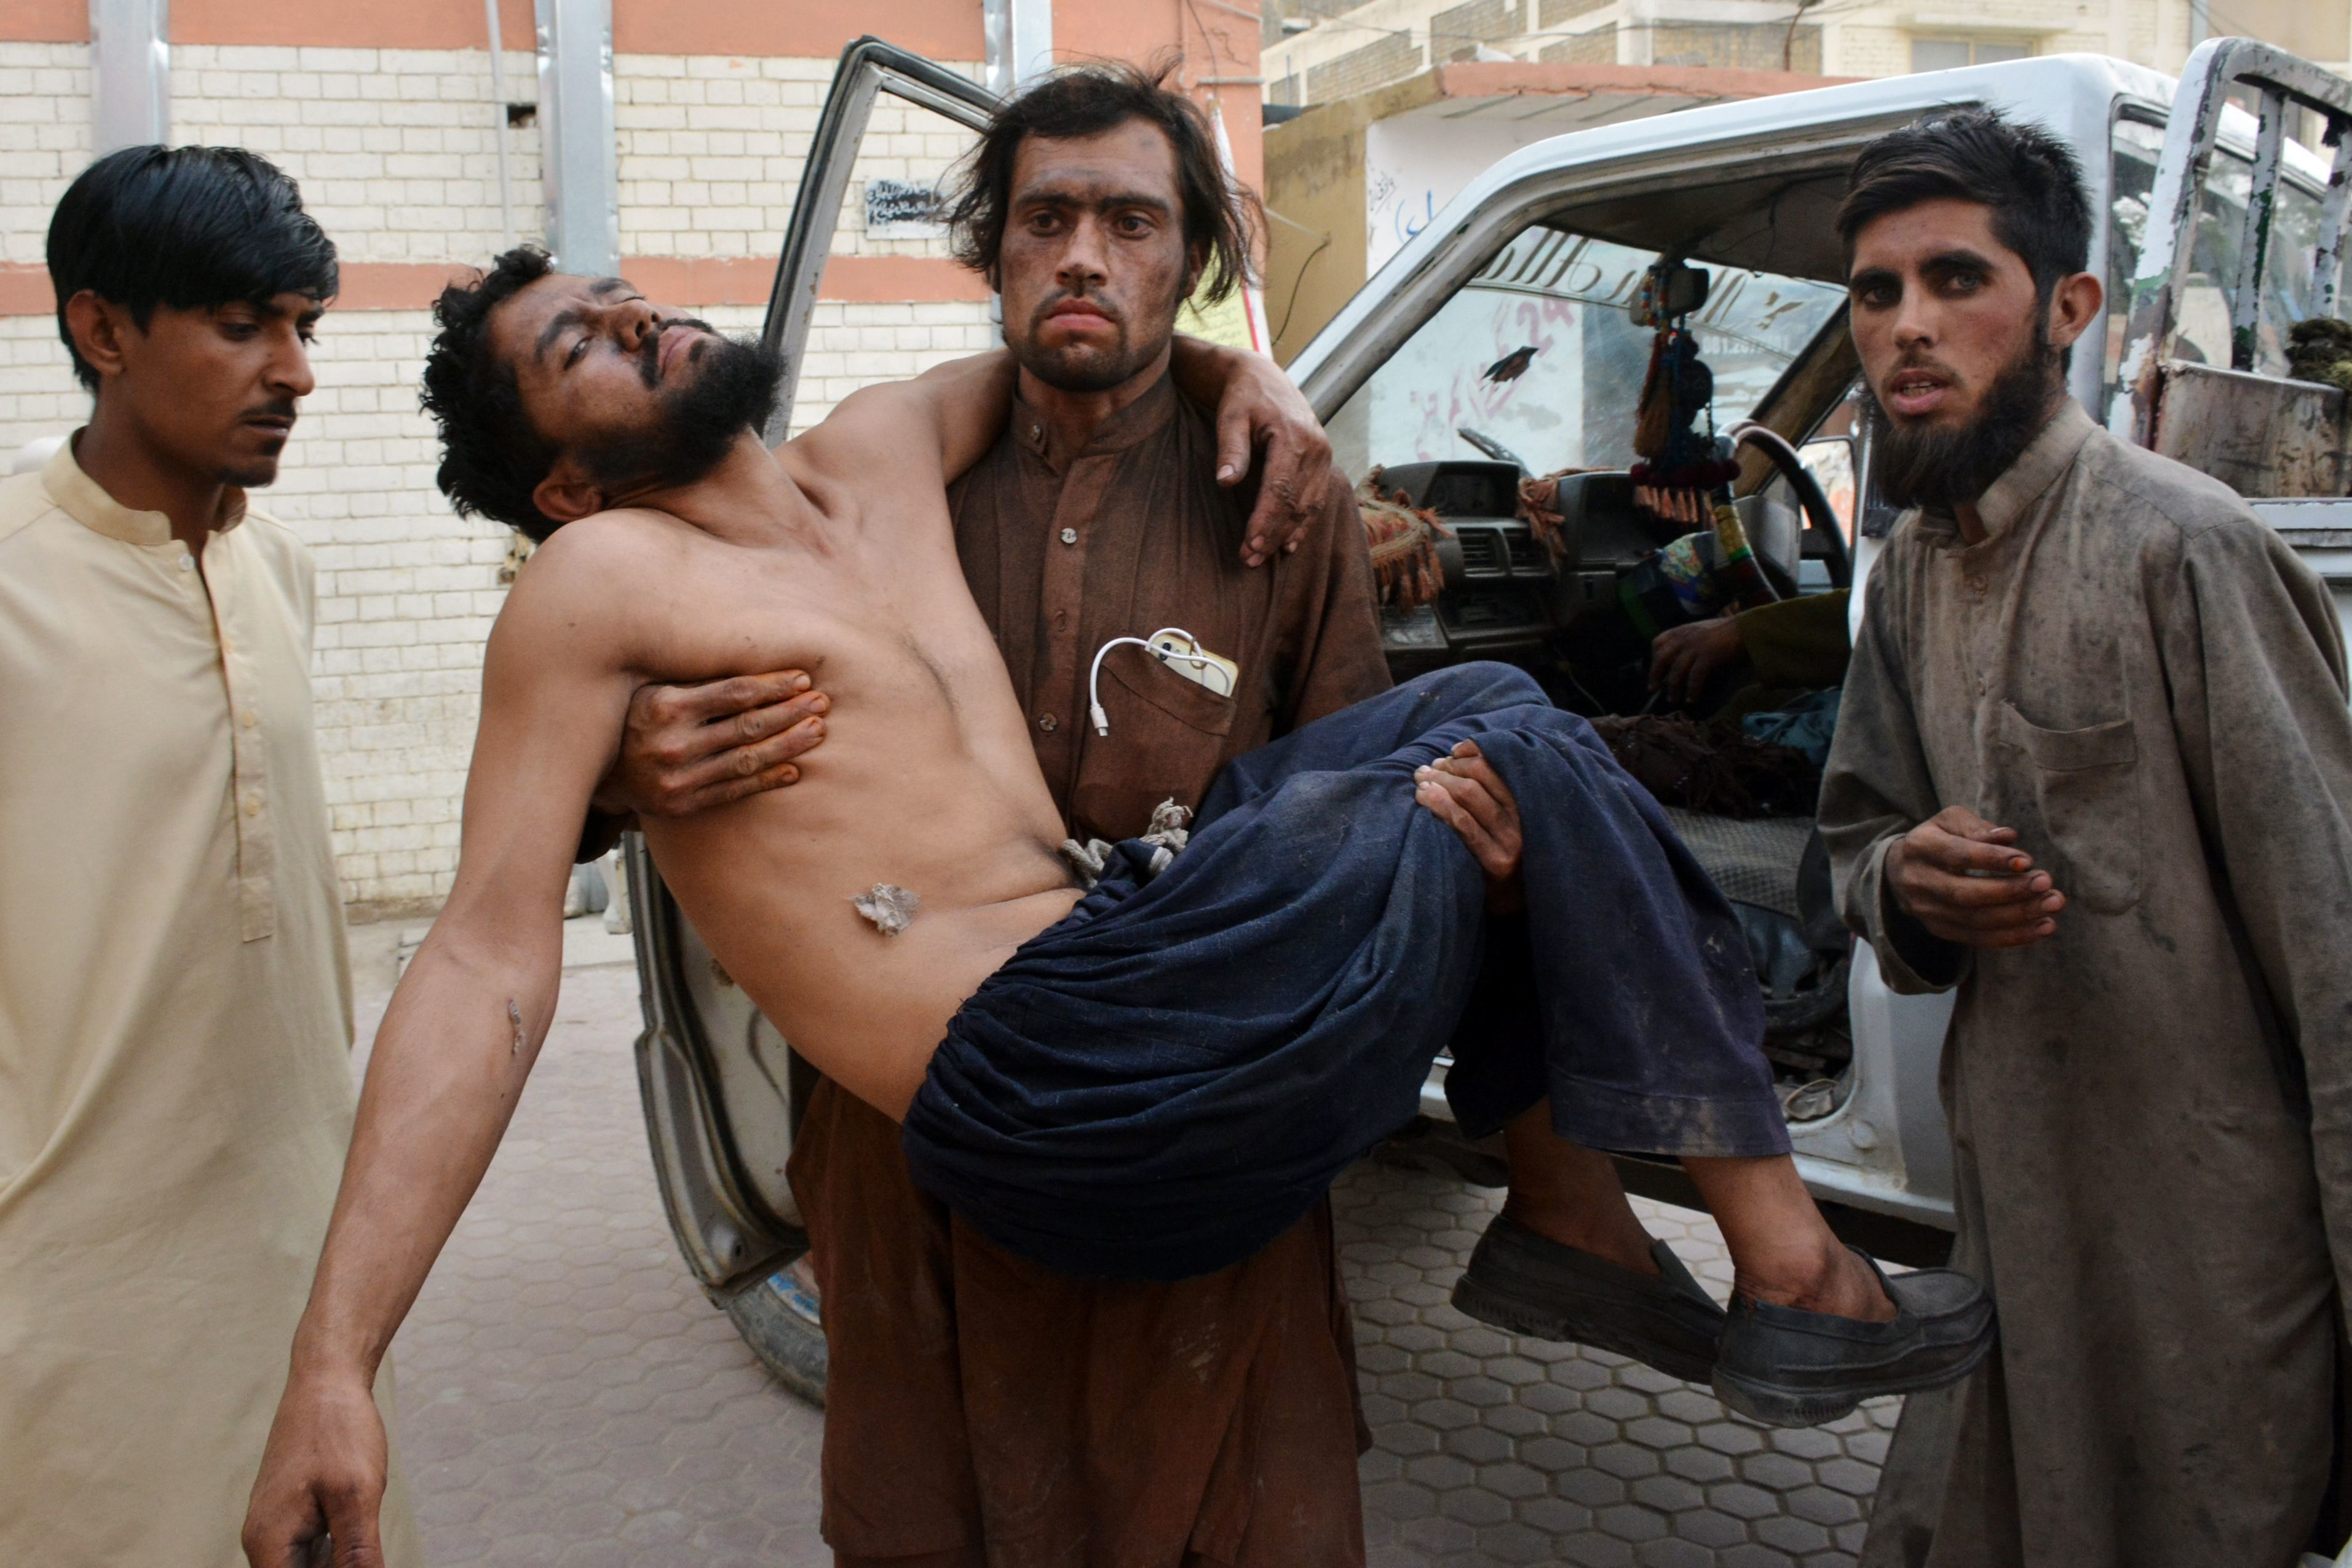 Pakistani miners carry an injured colleague to the hospital after the collapse of coal mine in Quetta on May 5, 2018. - Sixteen miners were killed and nine others were wounded on May 5 when a coal mine collapsed due to a gas explosion in southwestern Pakistan, officials said. (Photo by BANARAS KHAN / AFP)        (Photo credit should read BANARAS KHAN/AFP/Getty Images)